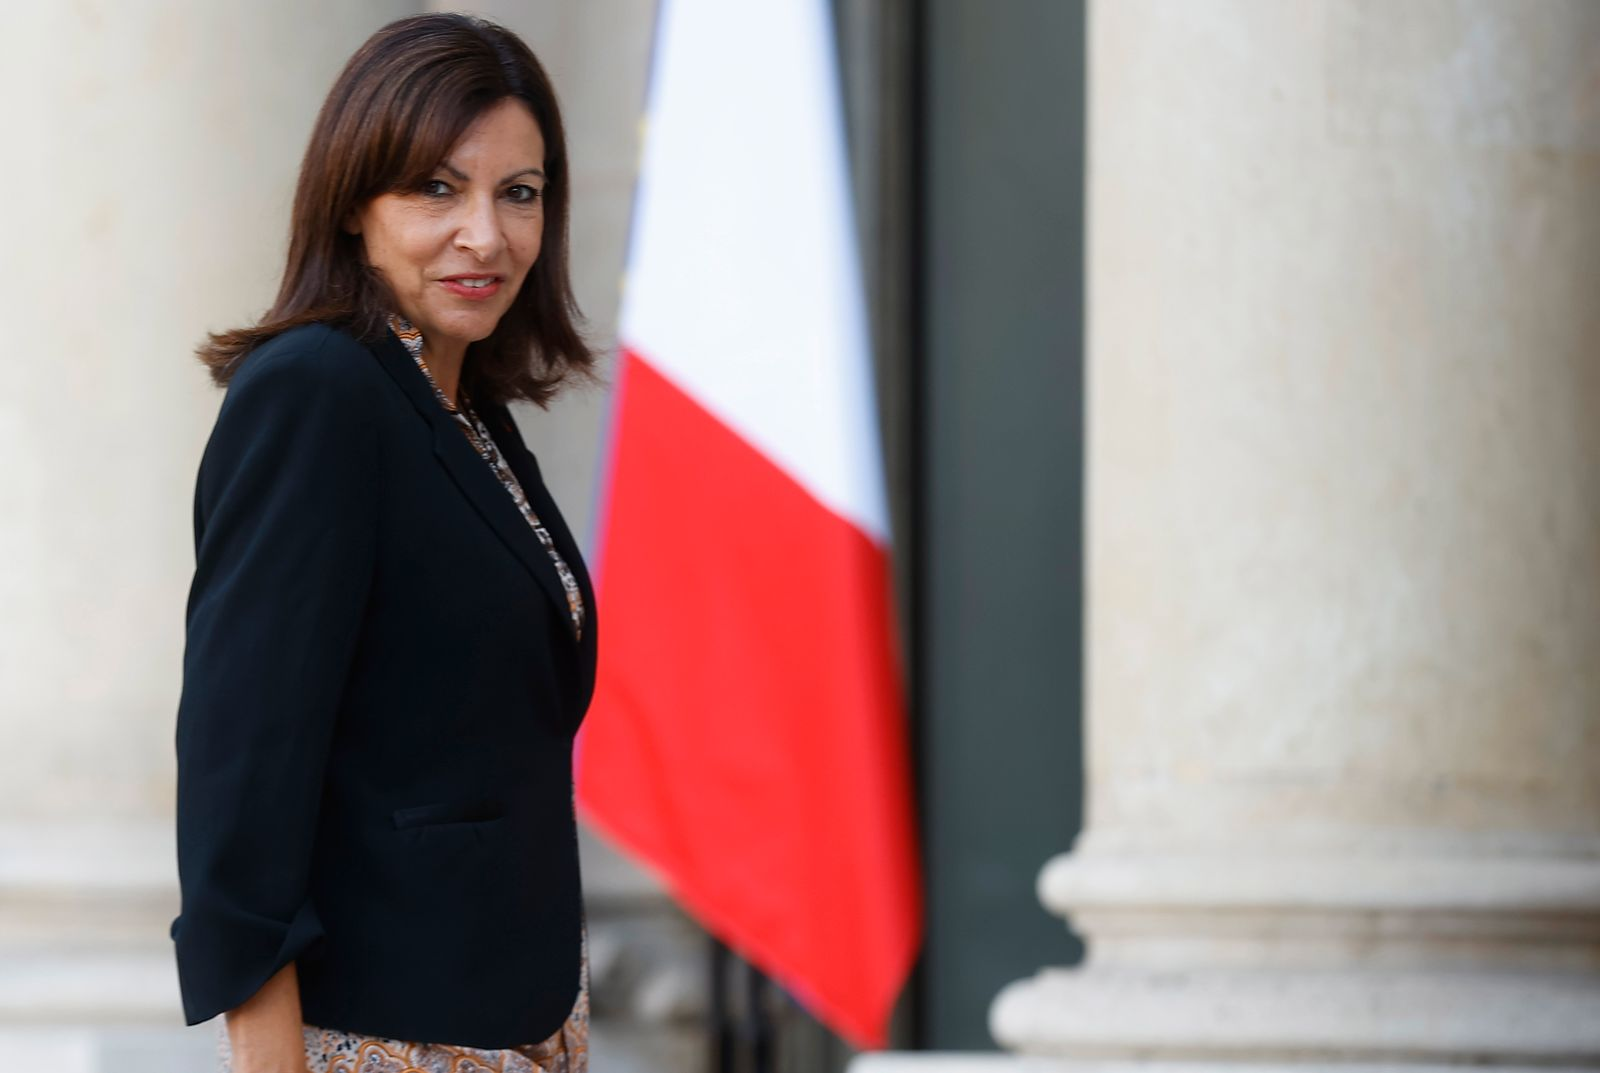 Mayor of Paris and Presidential candidate Hidalgo attends Olympic ceremony at Elysee in Paris